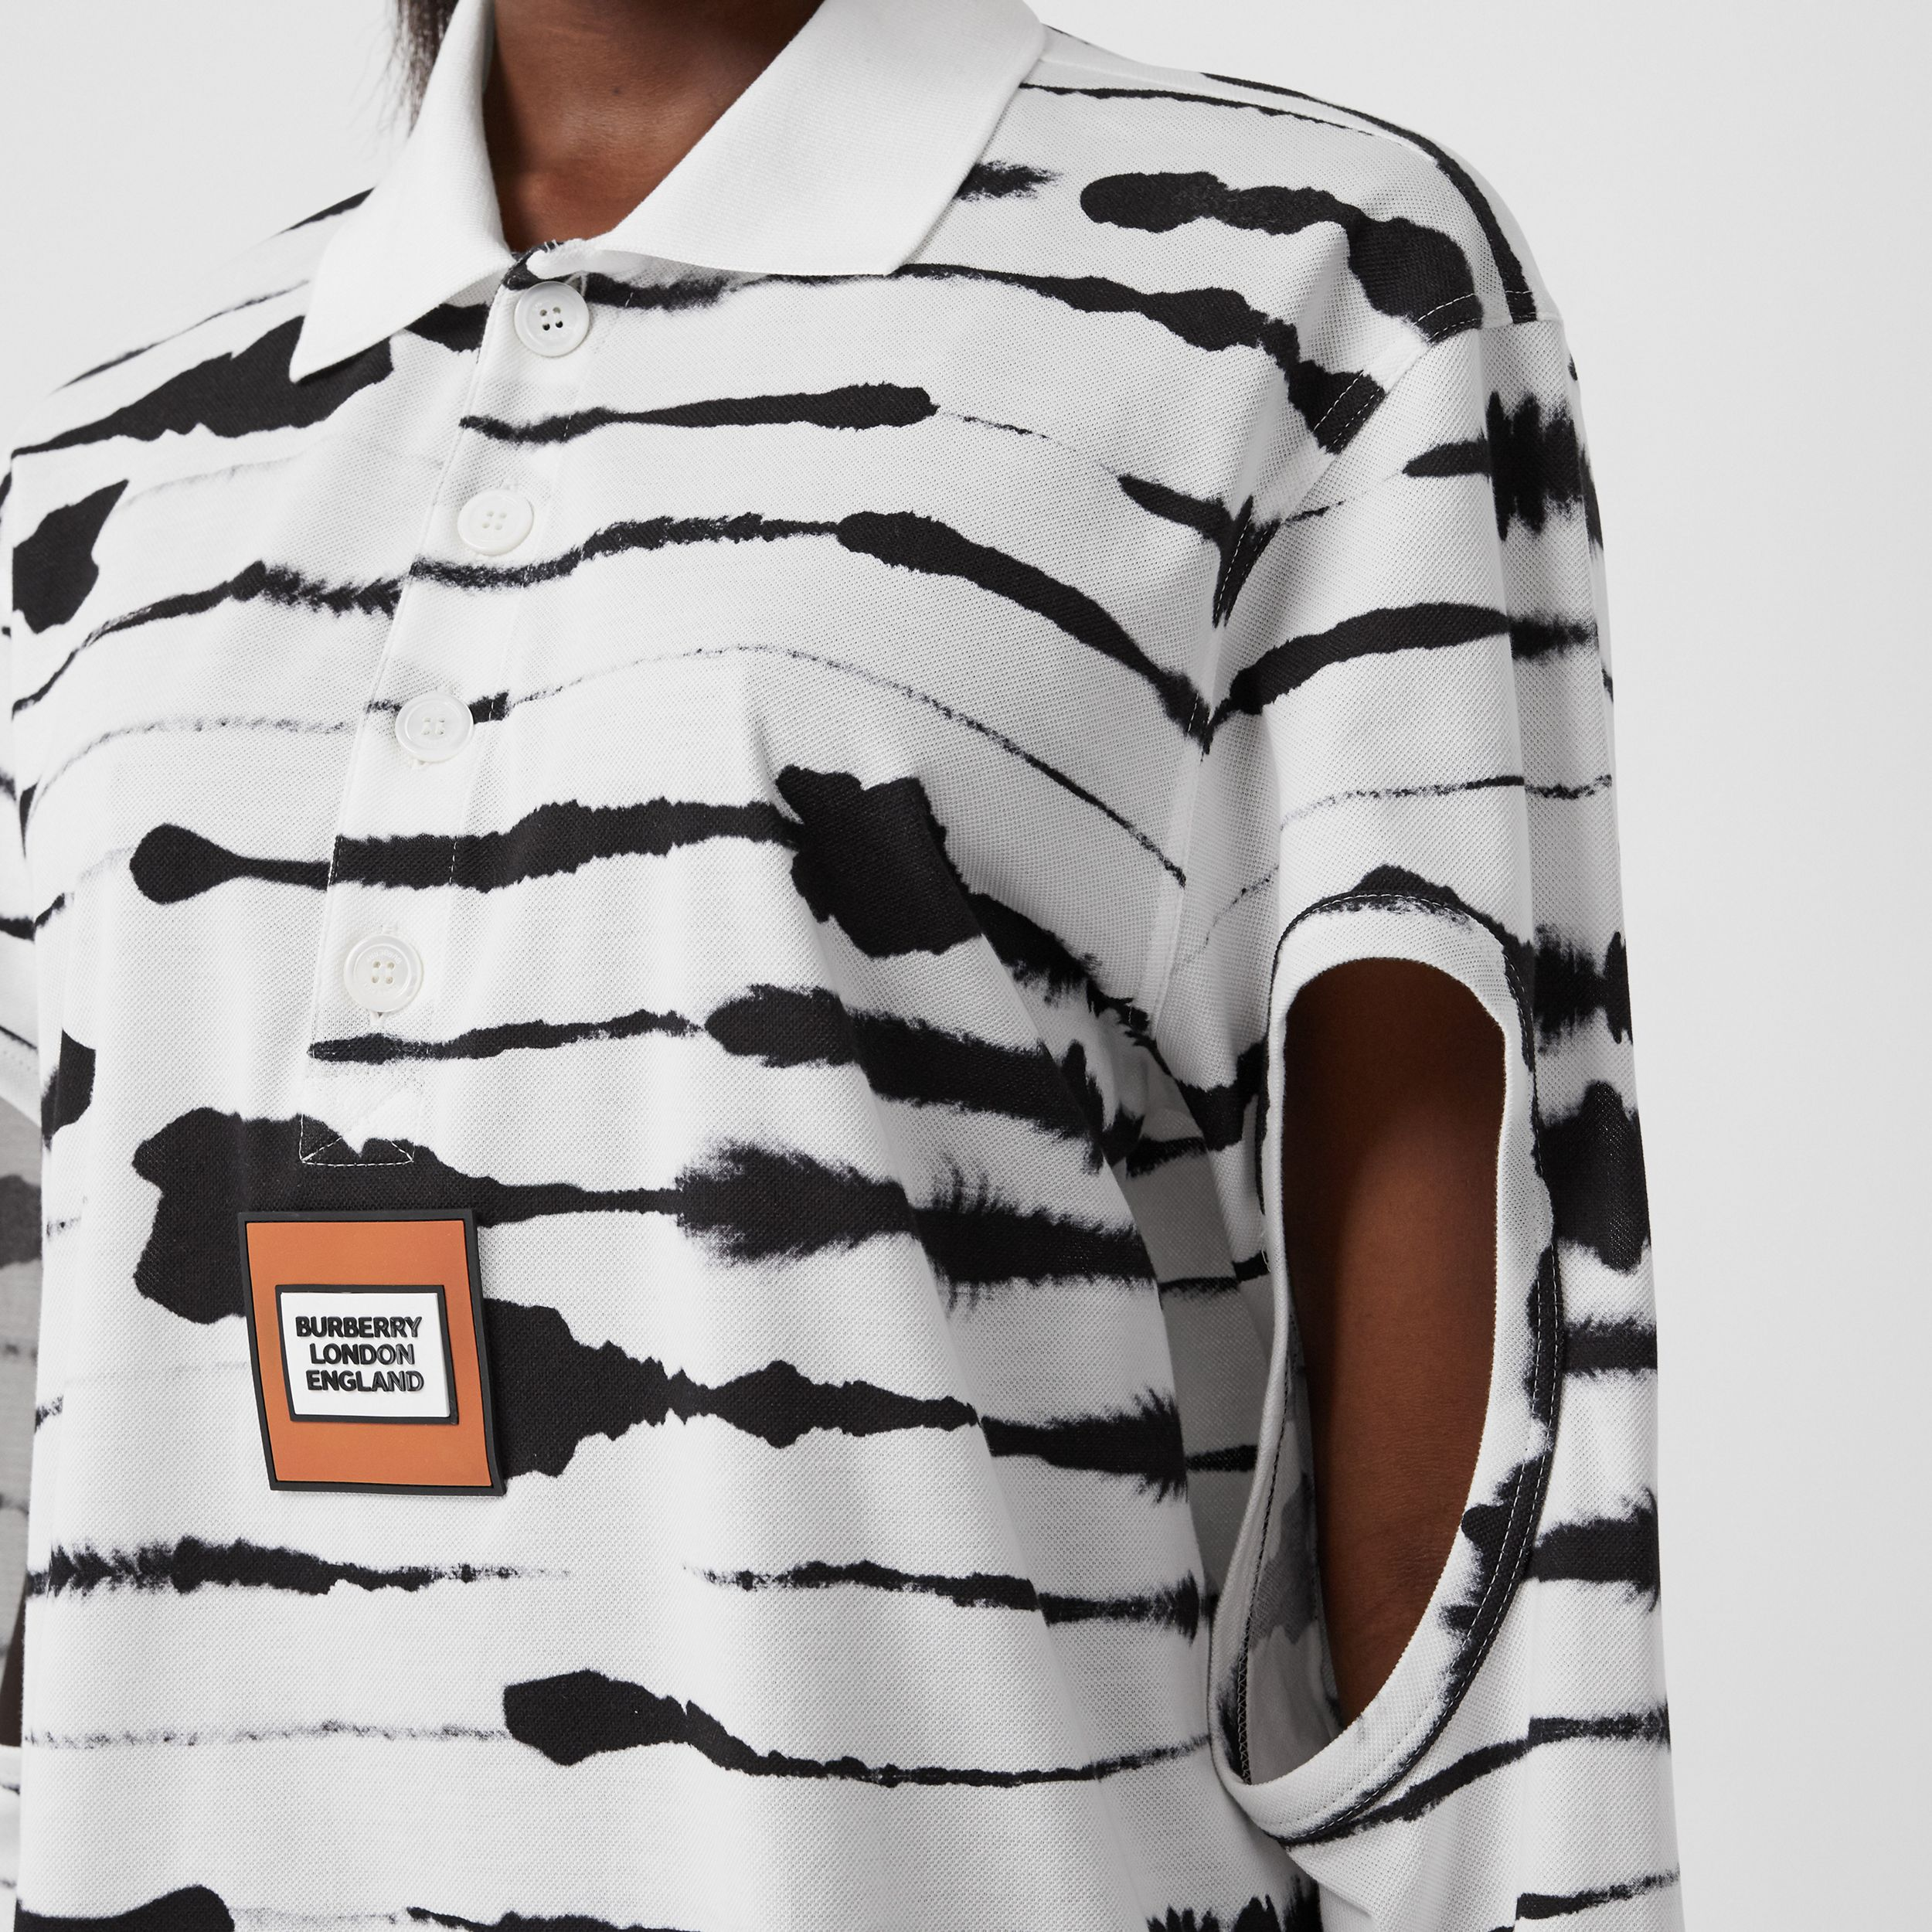 Cut-out Sleeve Watercolour Print Cotton Polo Shirt in Monochrome - Women | Burberry - 2